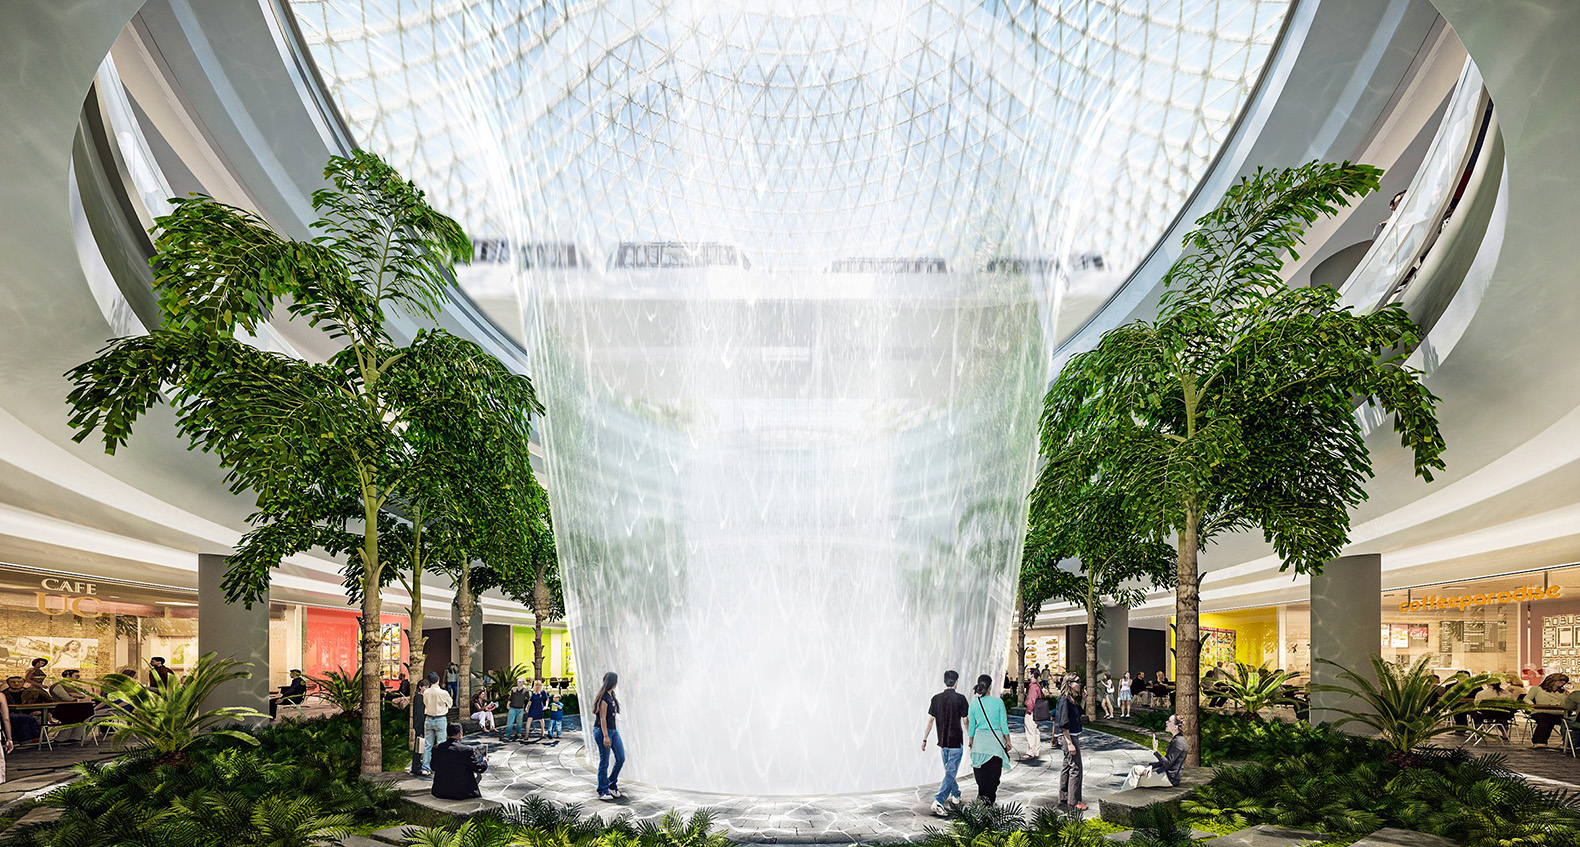 changi airport Book your flight tickets with singapore airlines and enjoy comfort and luxury on-board the world's most awarded airline plan your holiday with our latest travel deals.